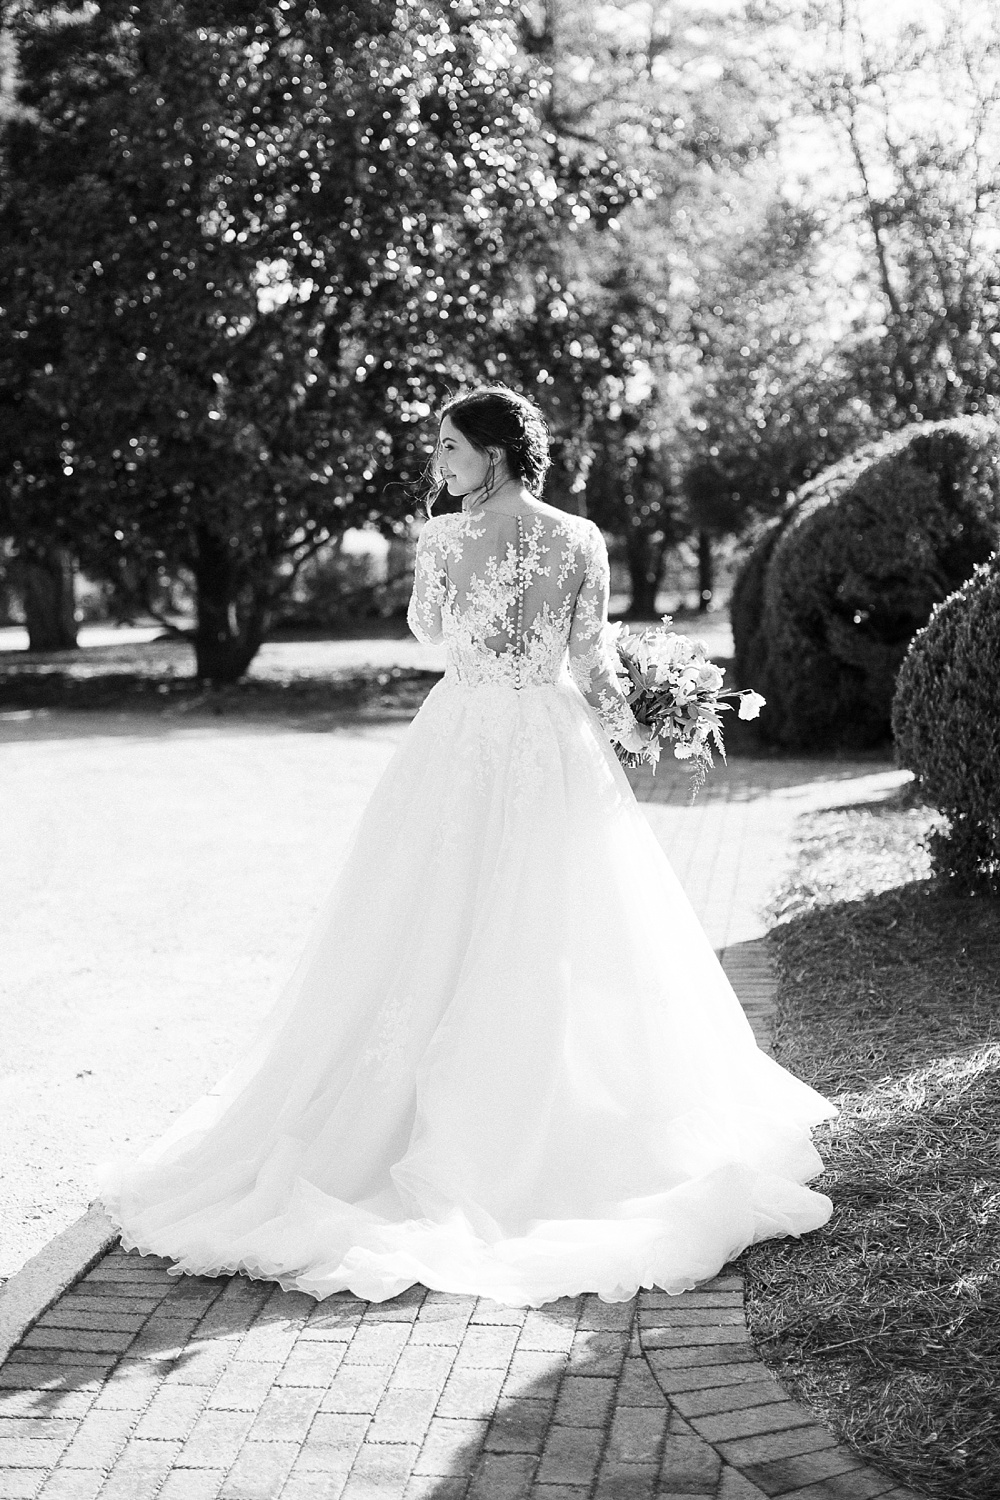 bridal portrait at the sutherland wake forest, nc by rachael bowman photography